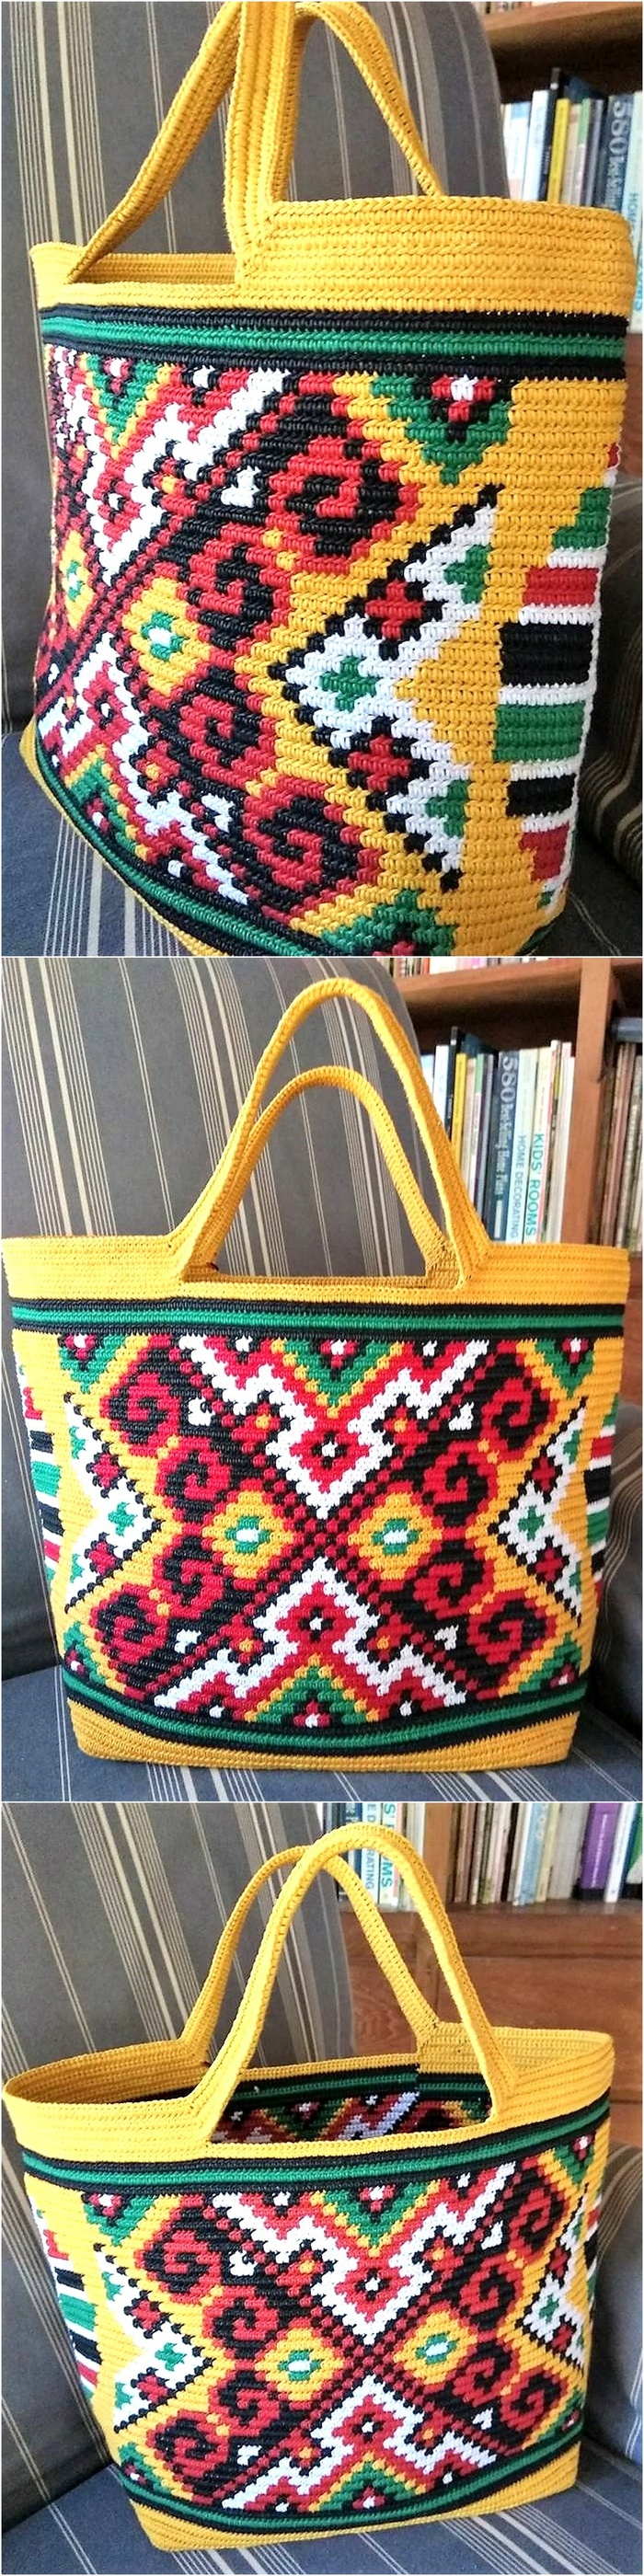 crocheted bag 14